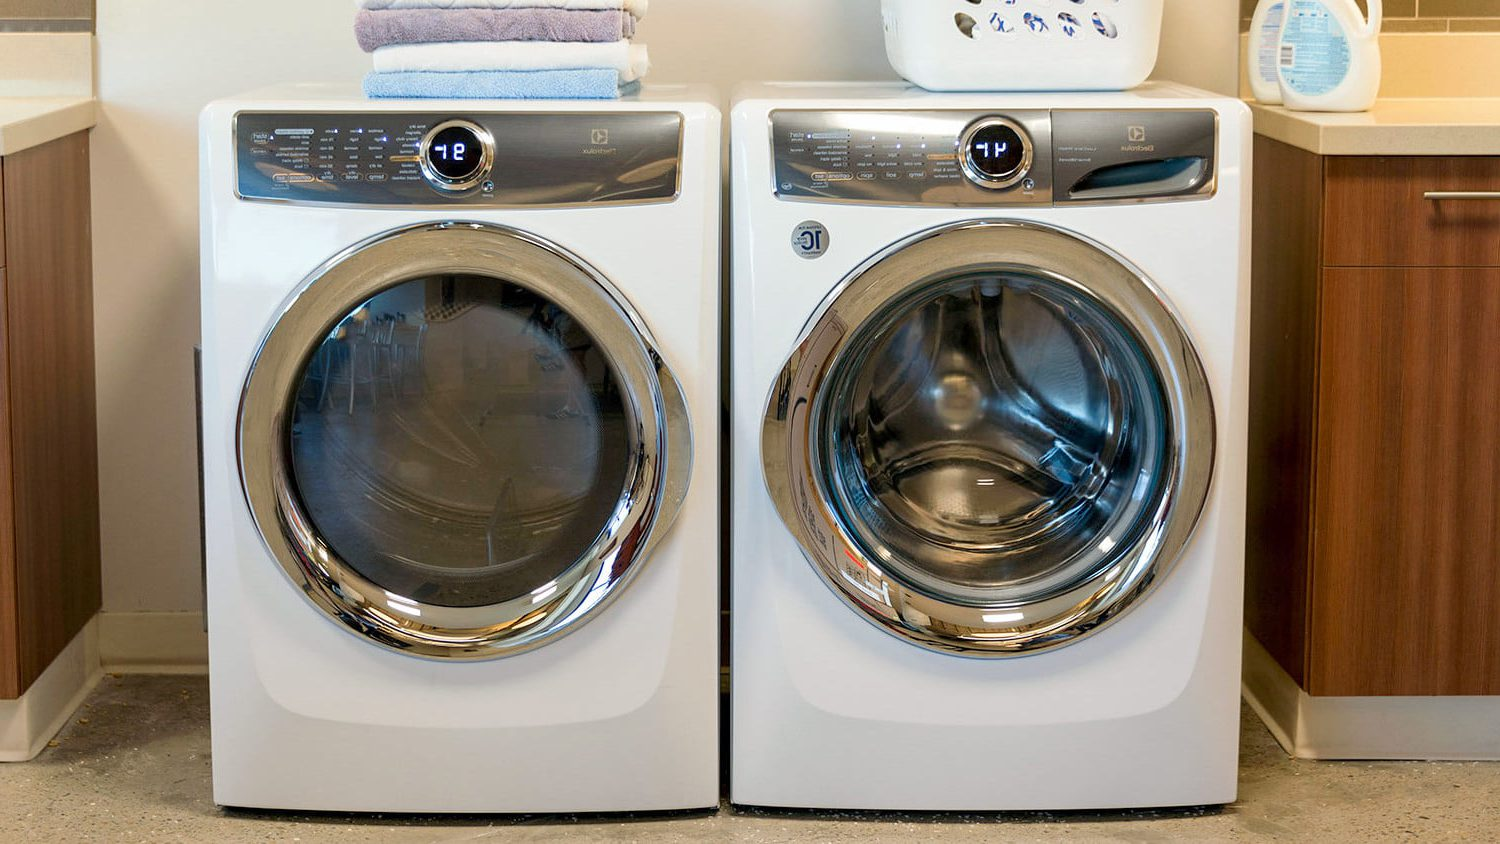 Maytag Vs Whirlpool Washer Versus